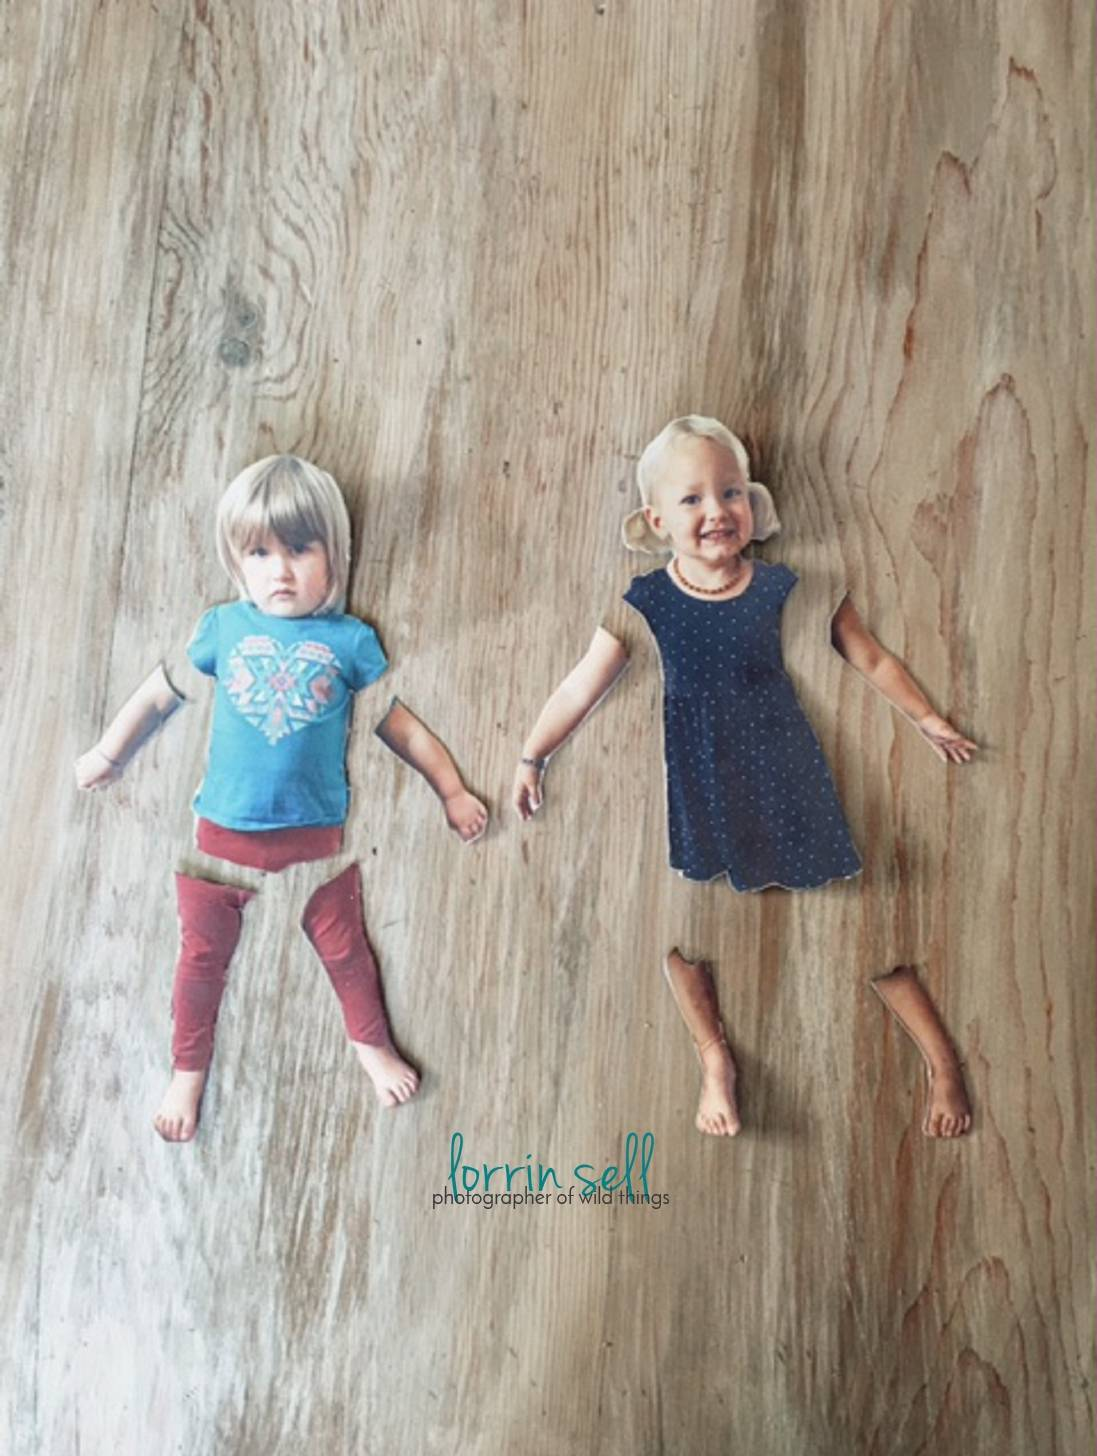 These DIY paper dolls were so easy to make, and the girls LOVE the fact that they have dolls that look JUST like them! I love an easy photo craft